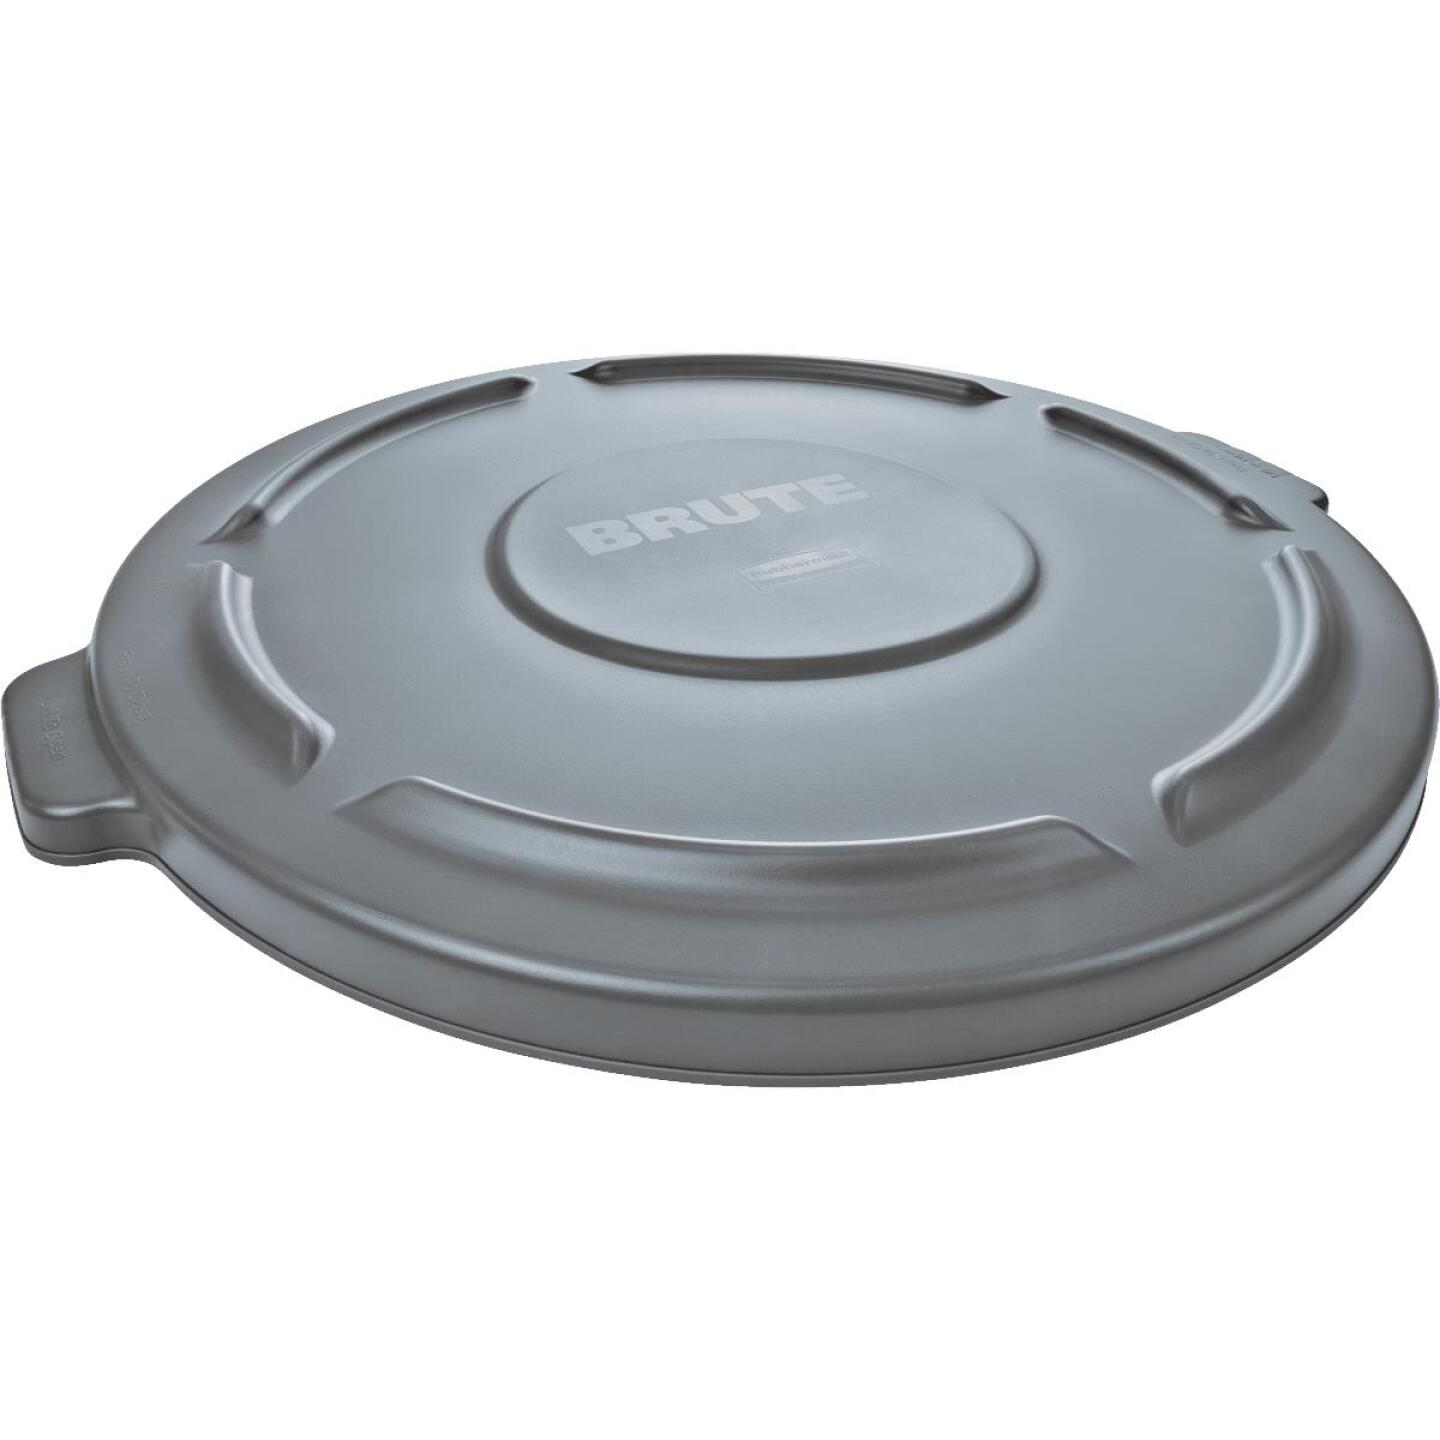 Rubbermaid Commercial Brute Gray Trash Can Lid for 20 Gal. Trash Can Image 1